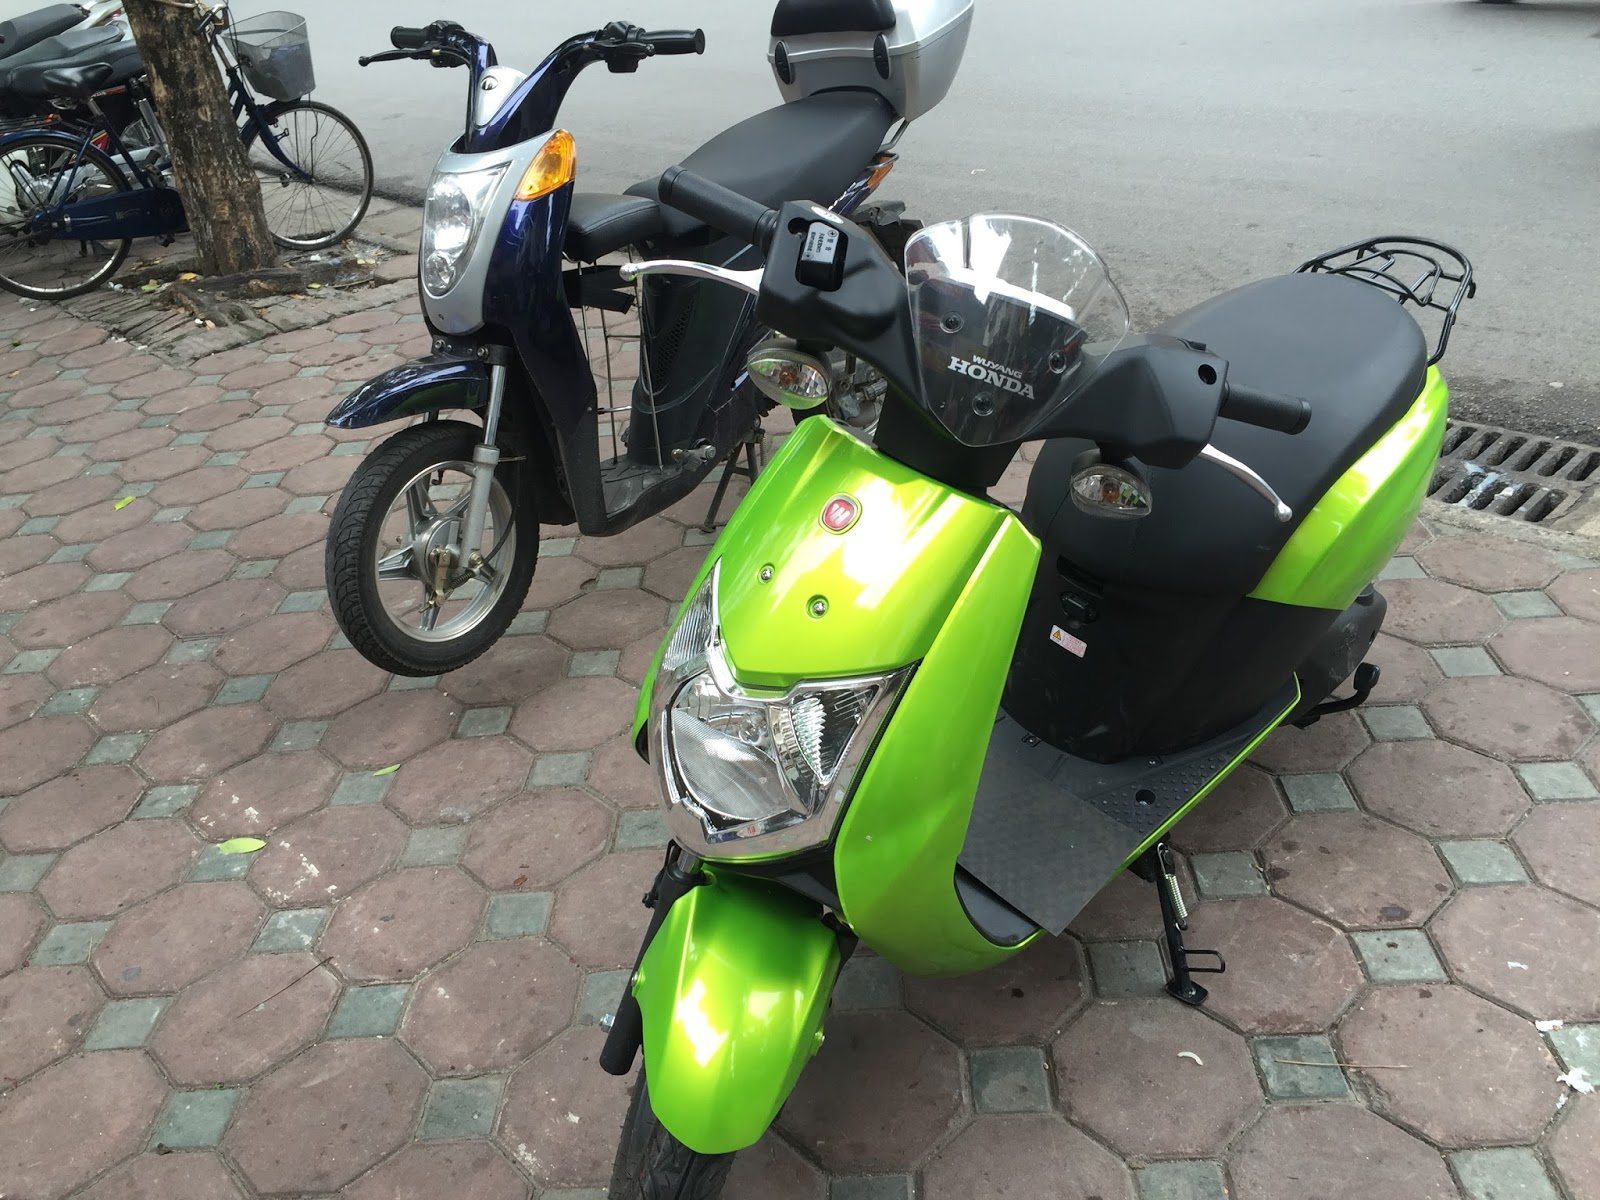 review xe may dien honda prinz co gi gia ban thong so ky thuat